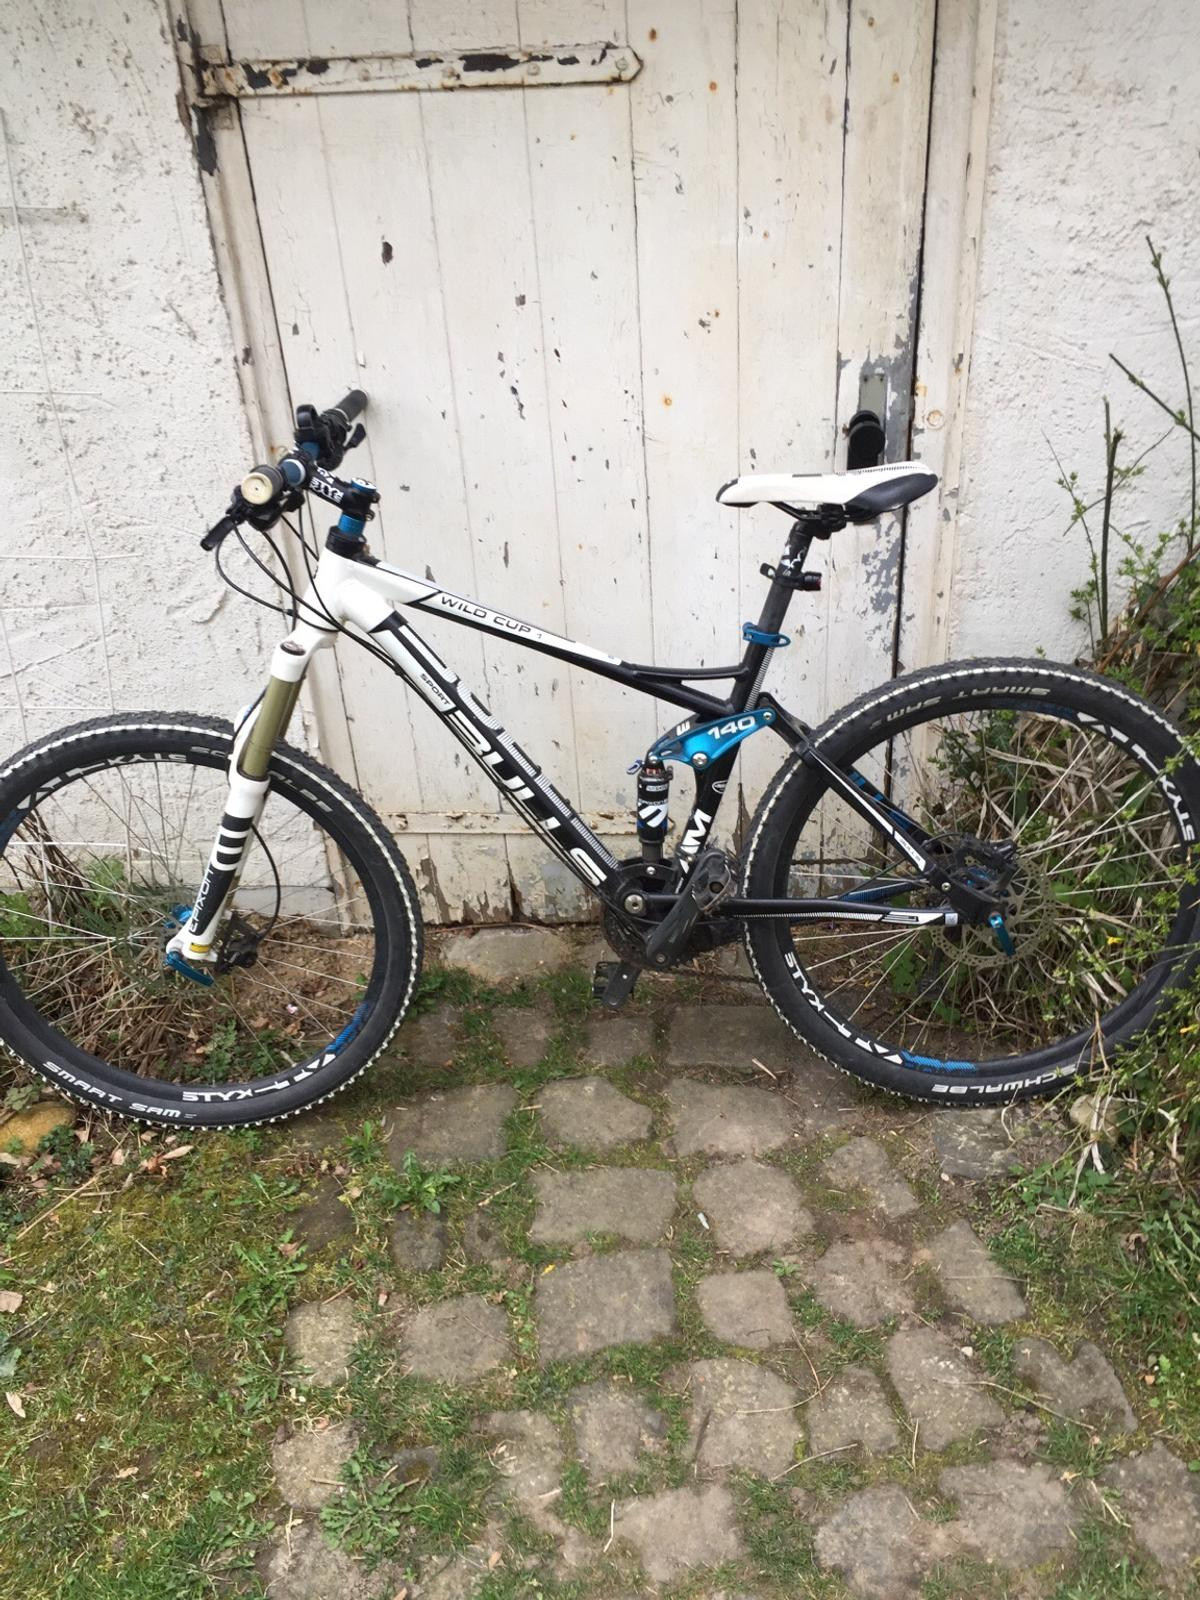 Bulls Wild Cup 1 Mountainbike 275 Zoll In 31162 Bad